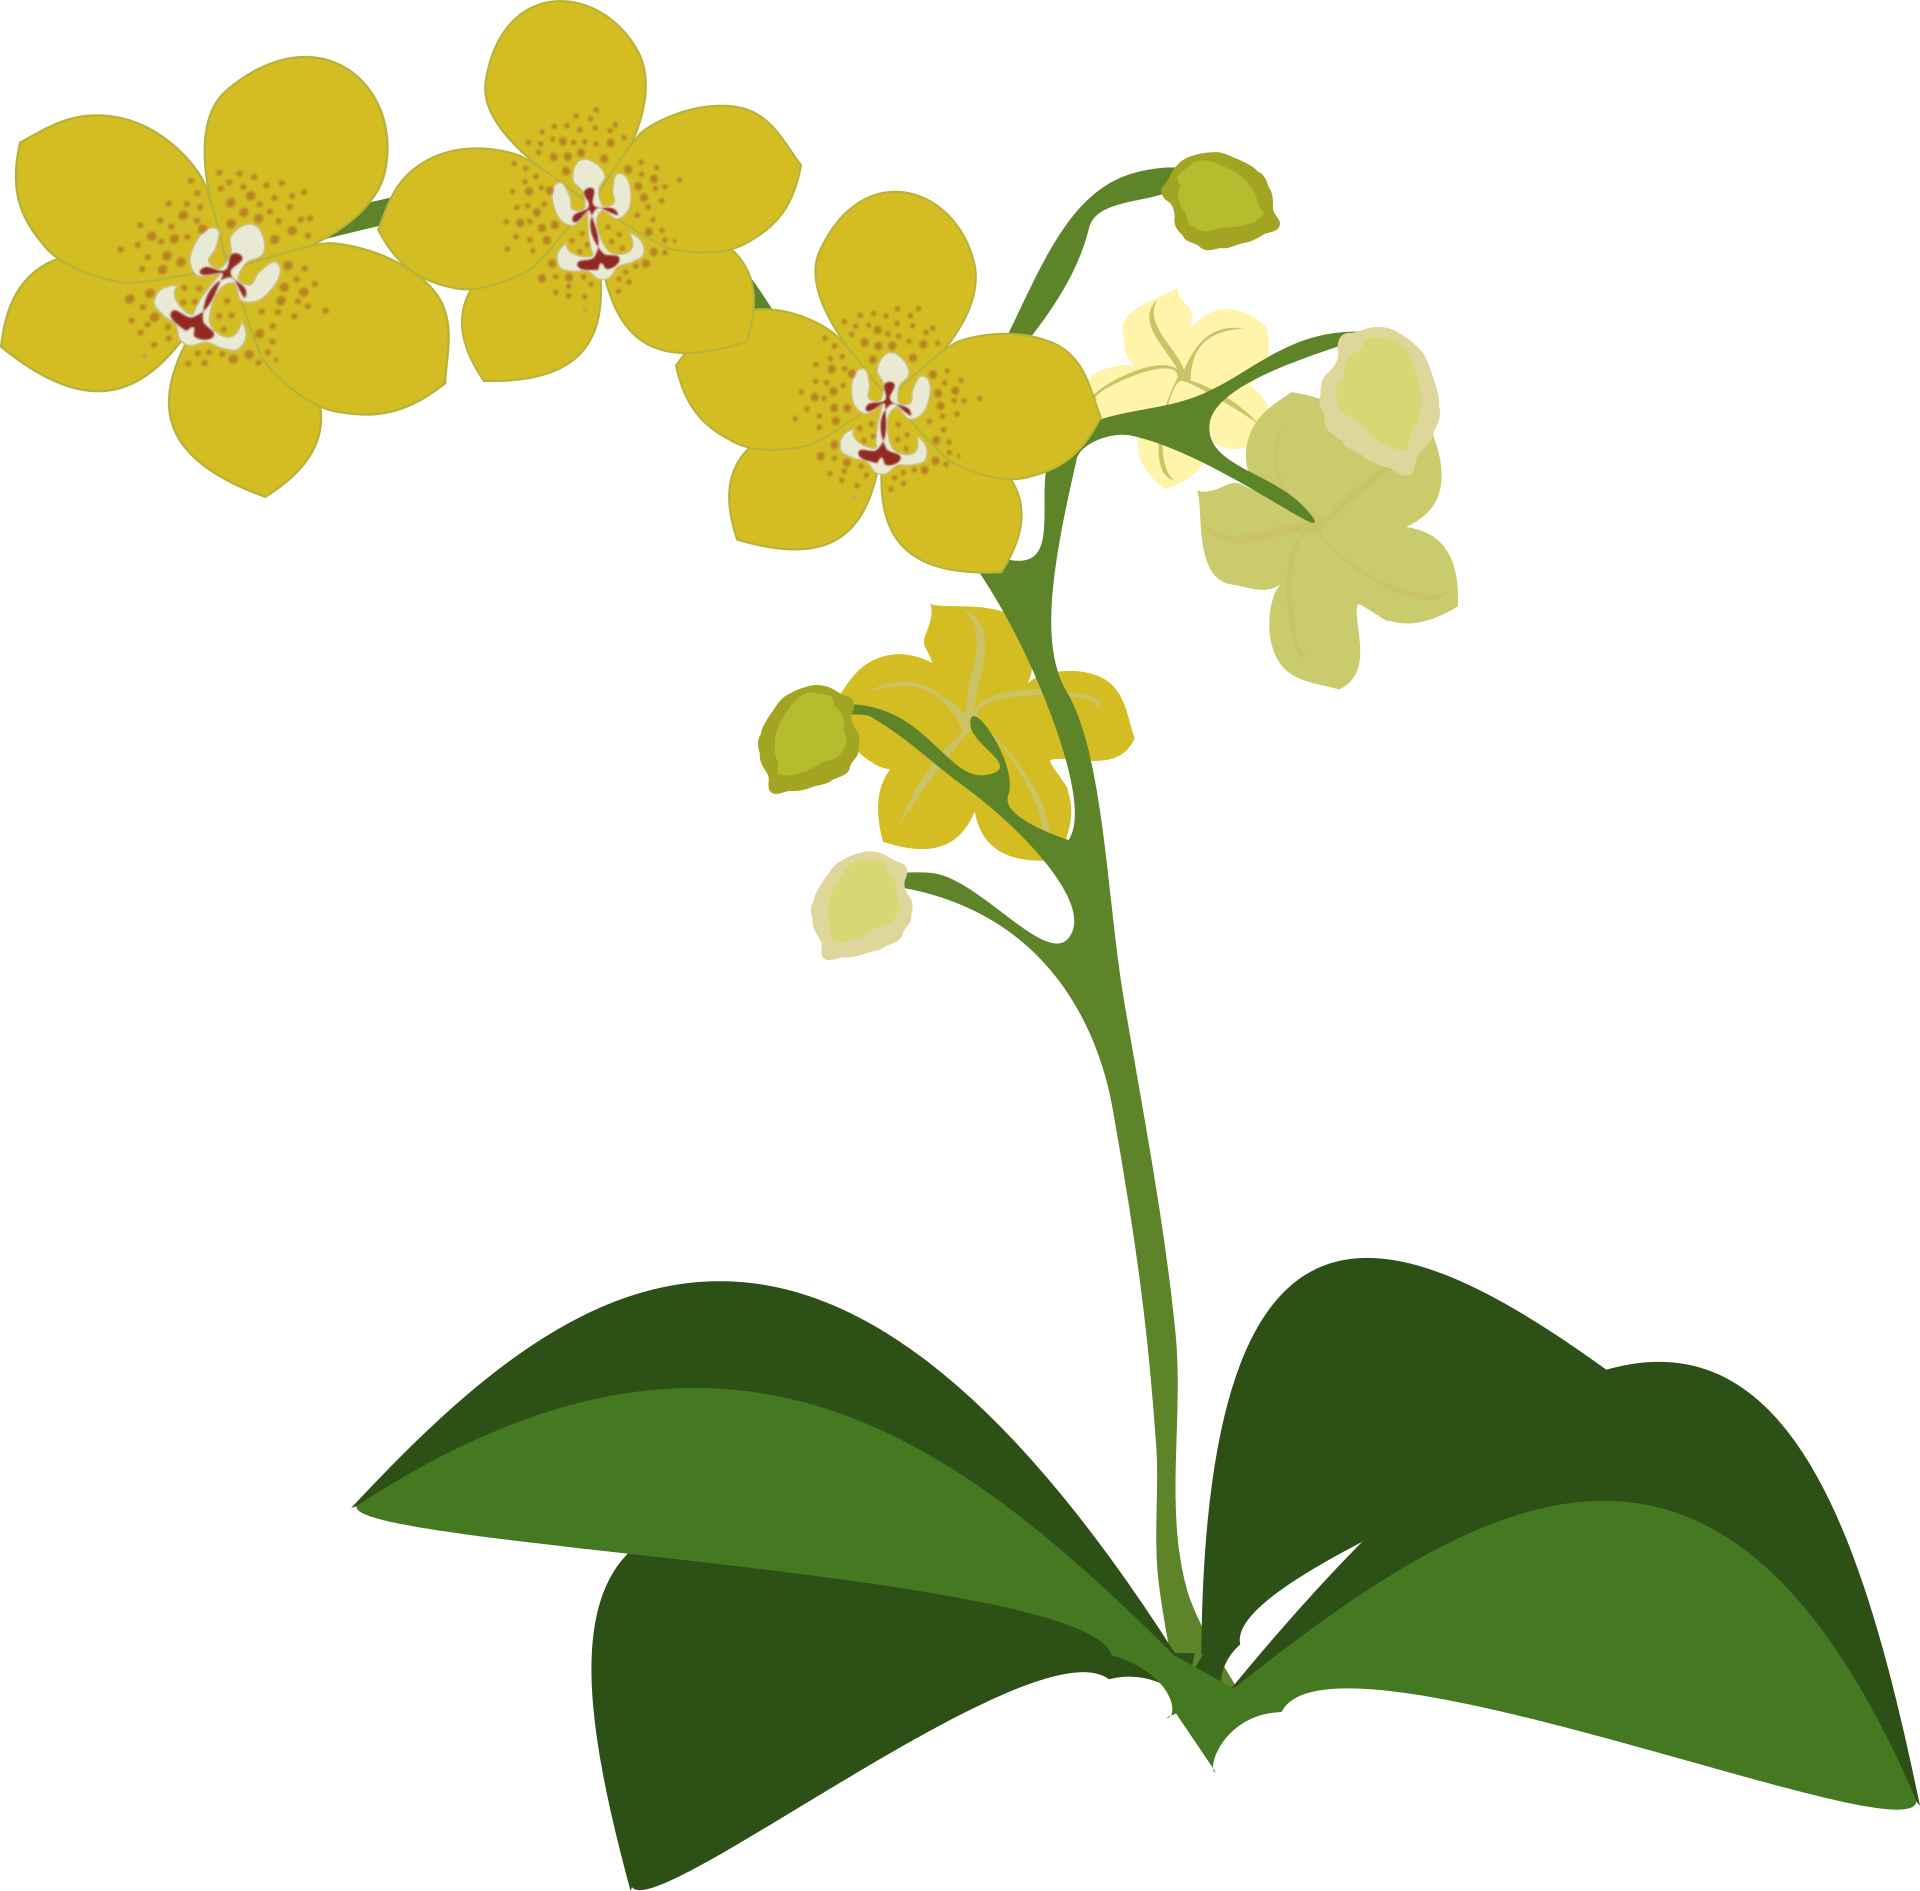 Drawing orchid yellow. Graphic of a plant